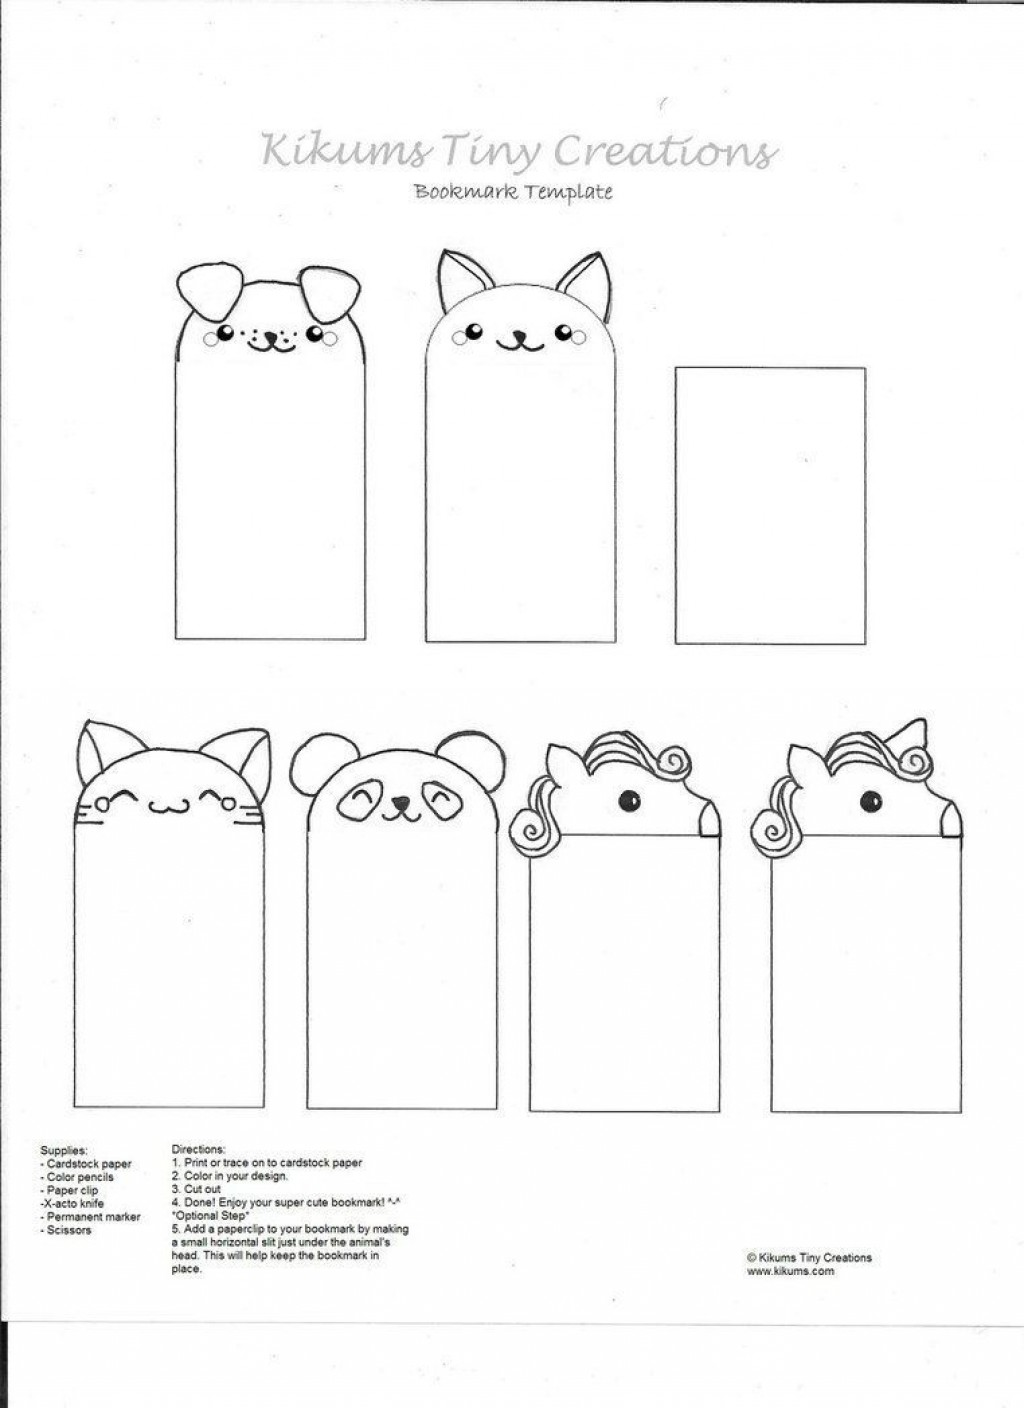 000 Unusual Free Printable Bookmark Template Highest Clarity  Templates Download Photo For TeacherLarge